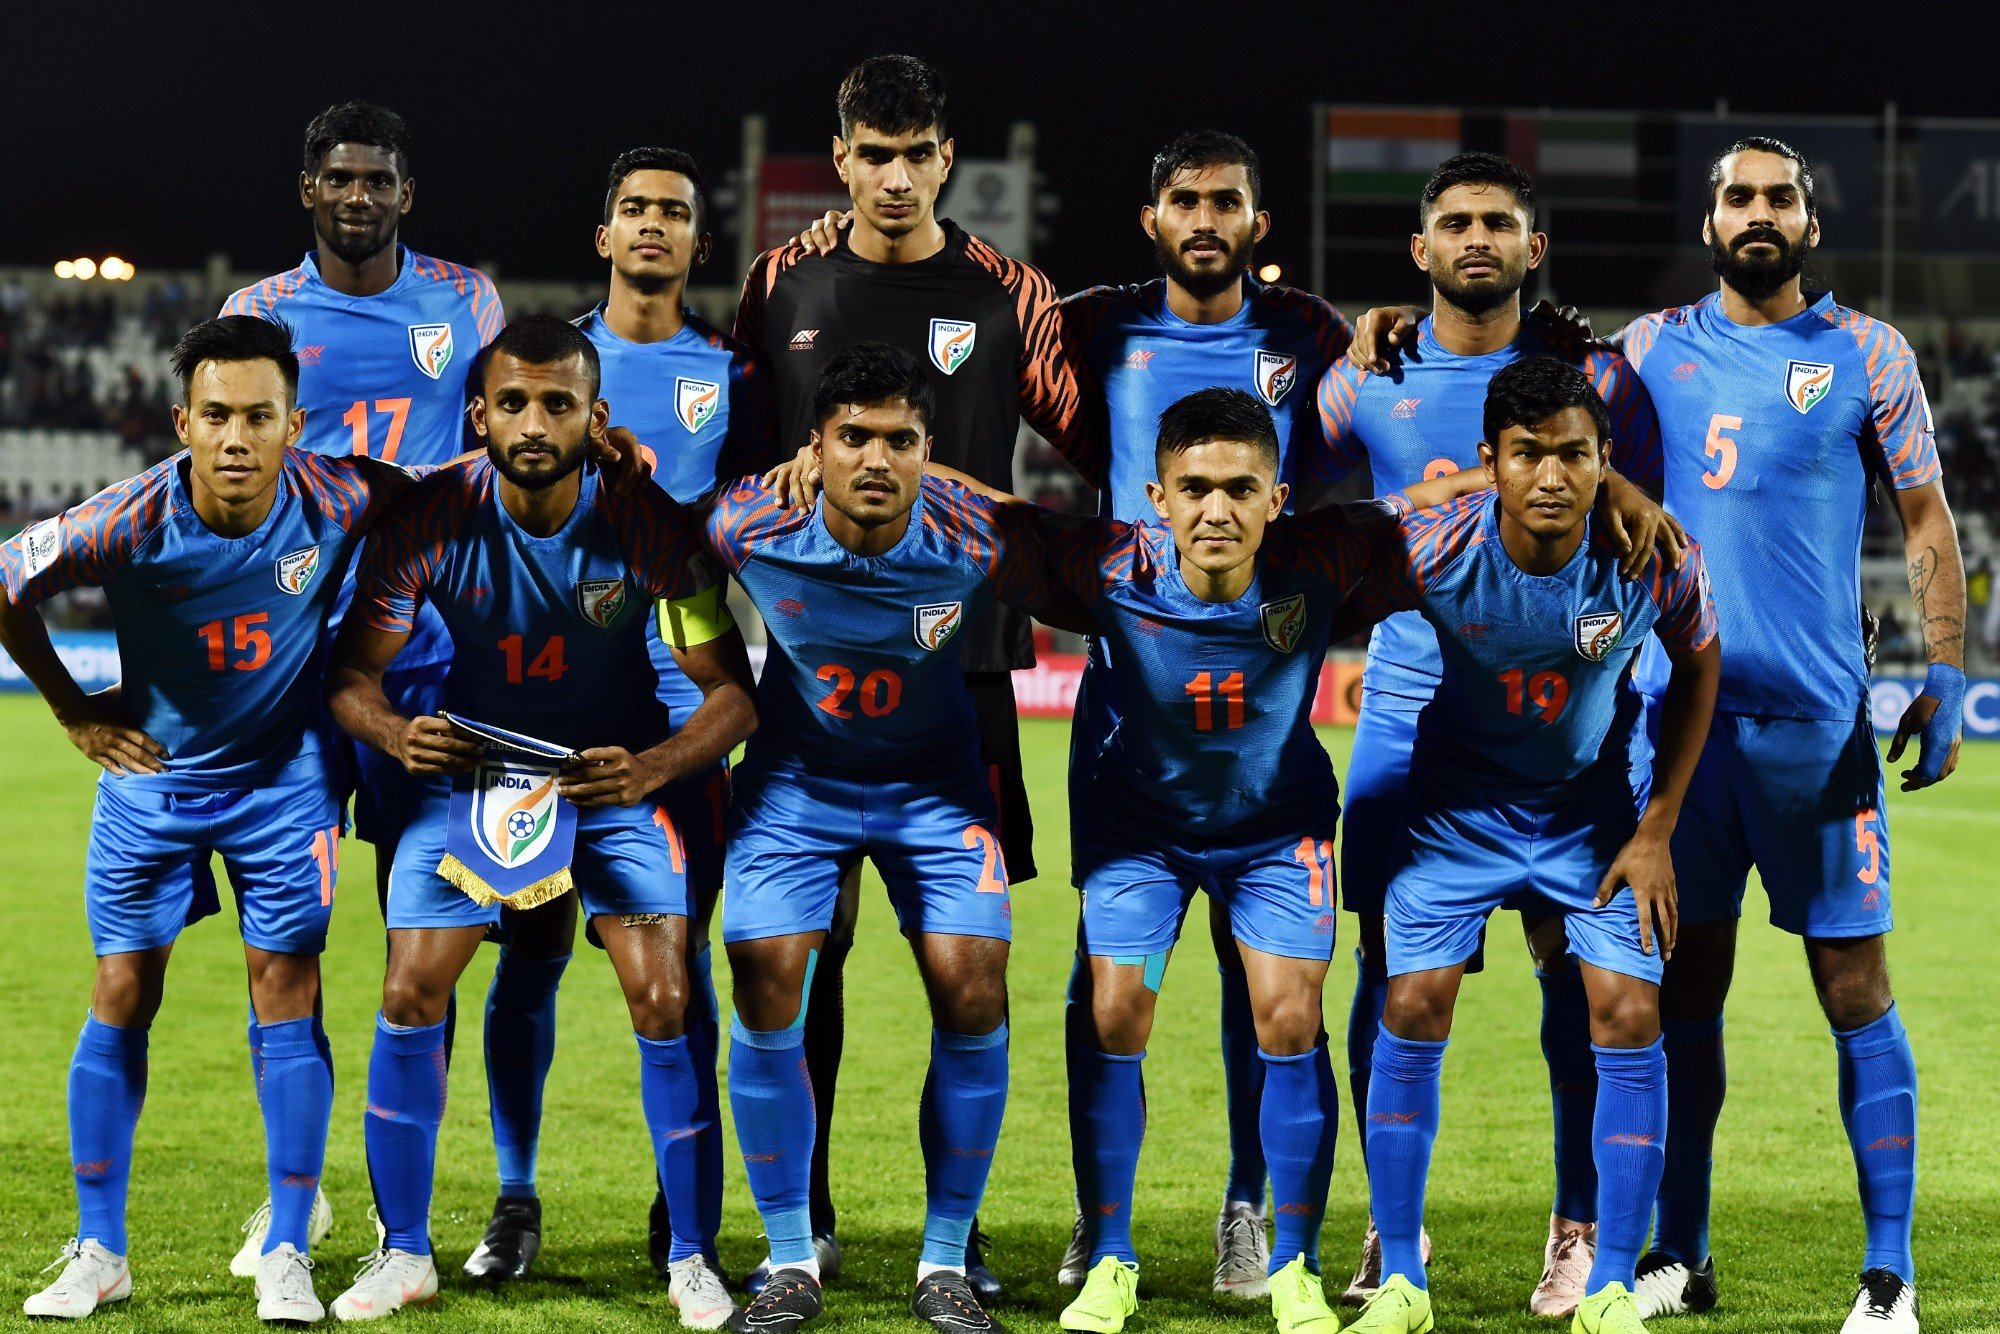 Indian Football: India climbs two places in FIFA rankings